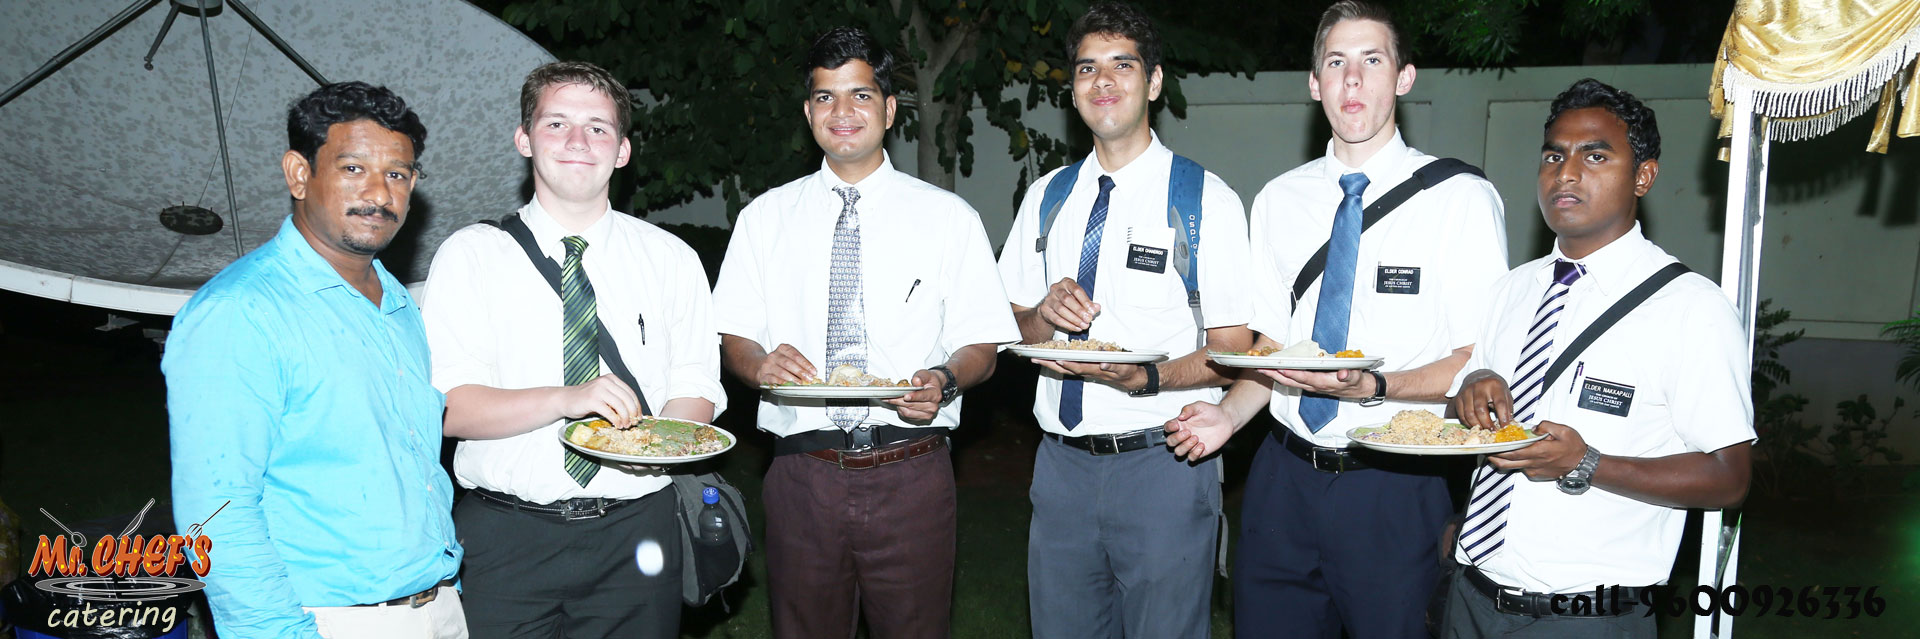 catering service in coimbatore